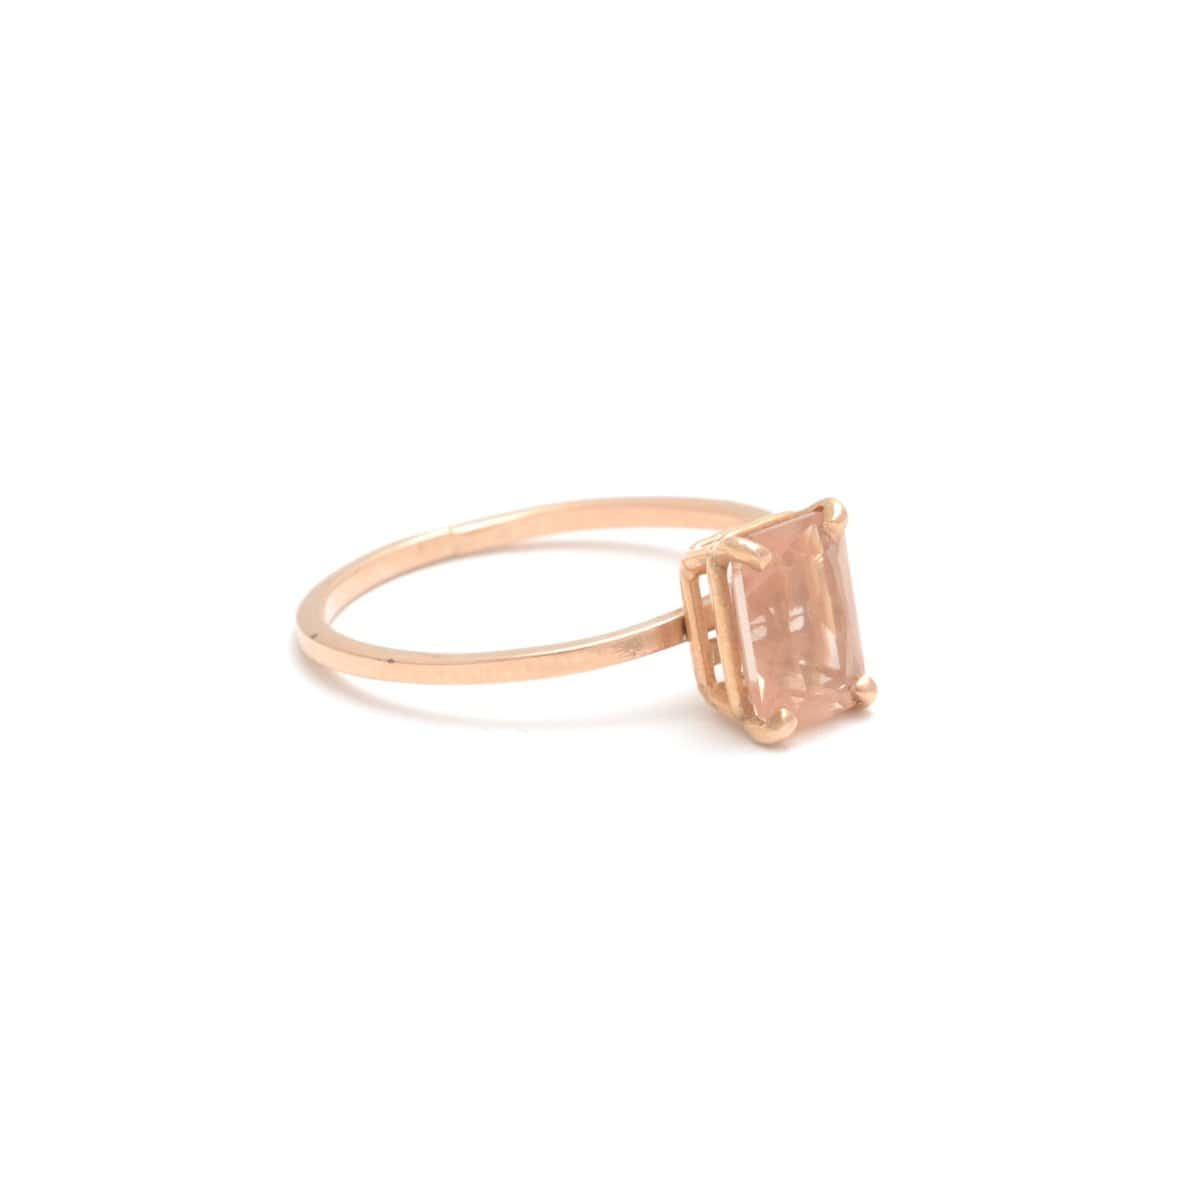 Emerald-cut Sunstone Solitaire Ring